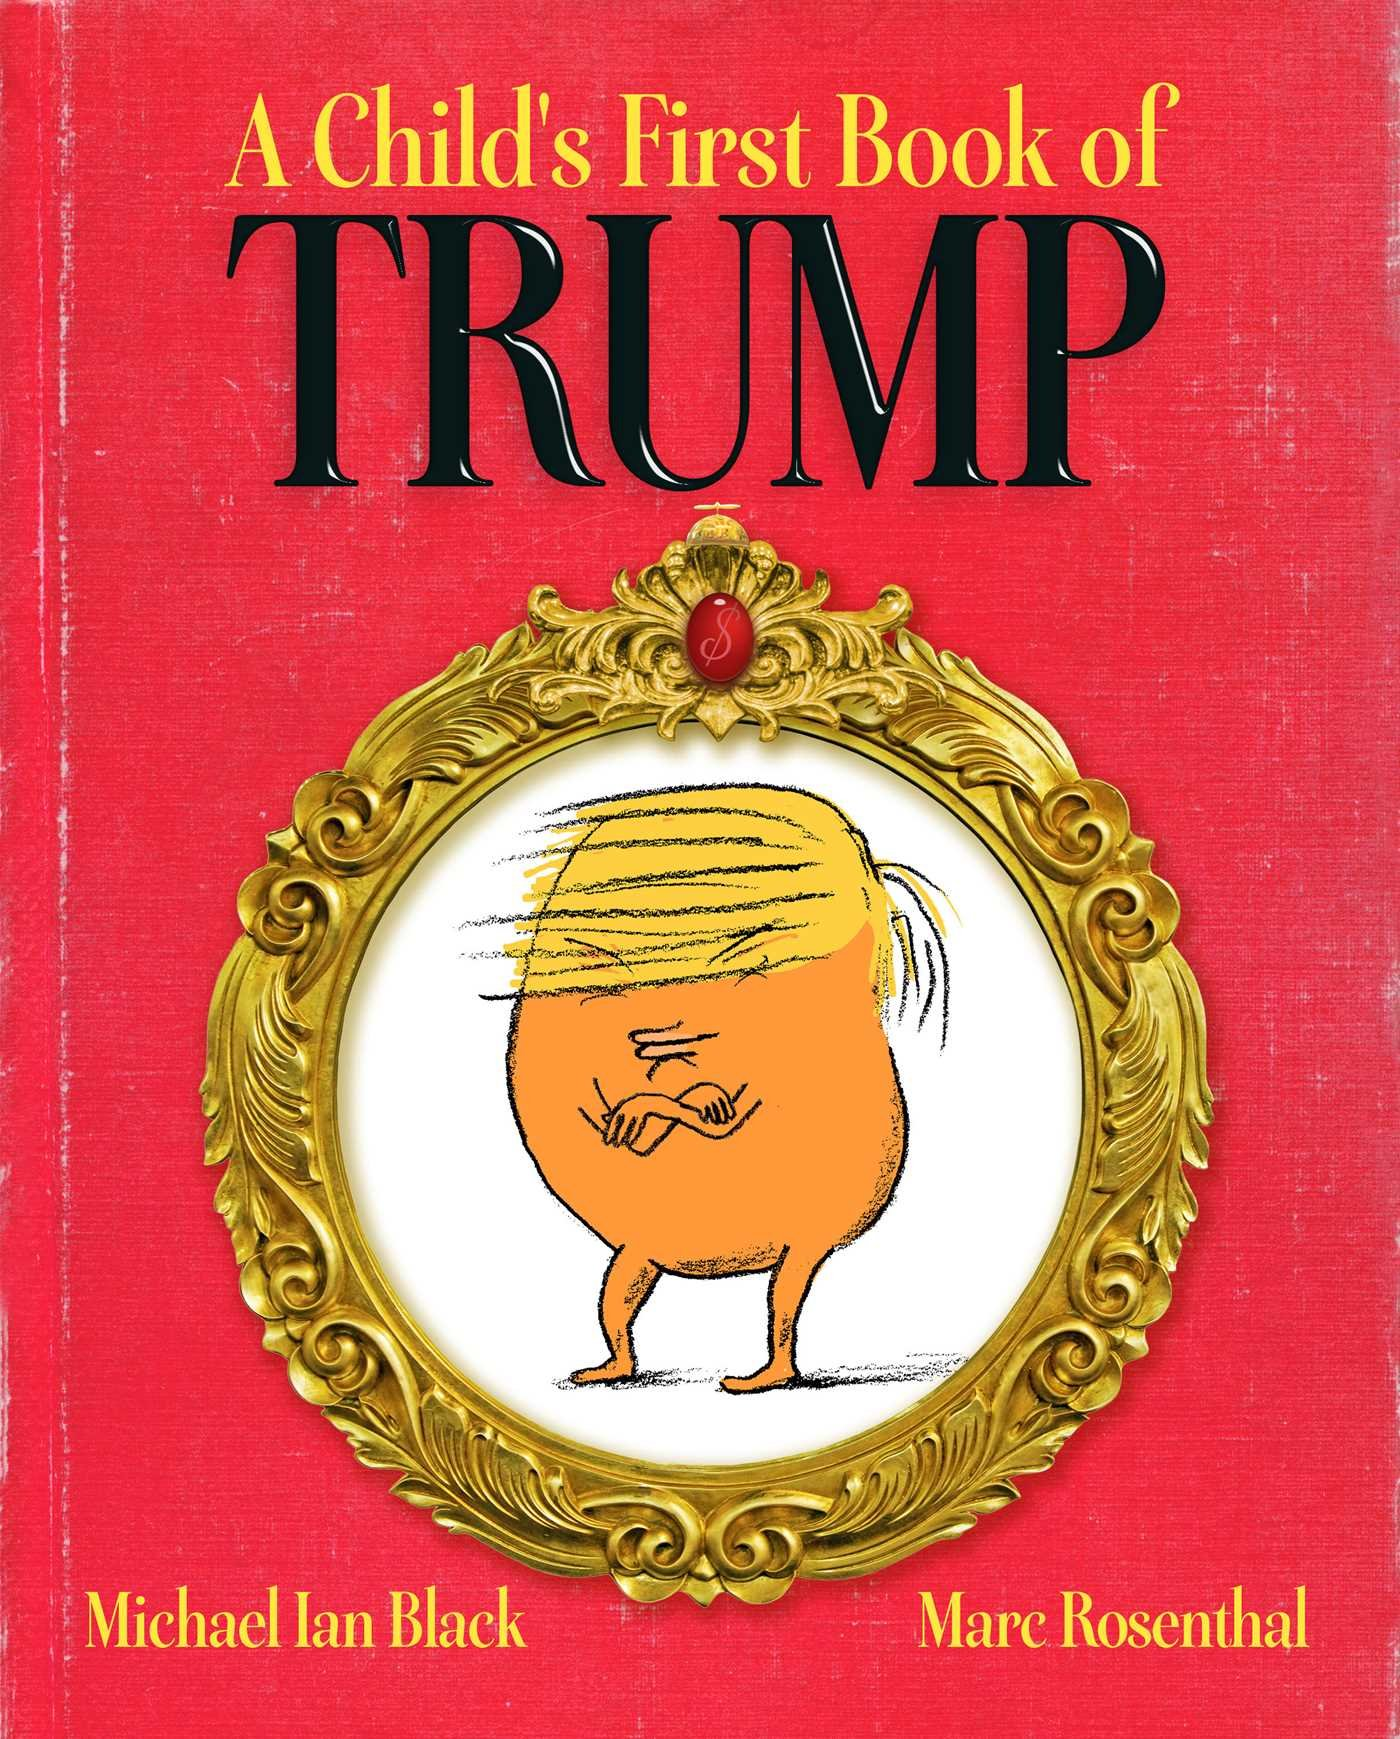 A Child's First Book of Trump: Michael Ian Black, Marc Rosenthal ...